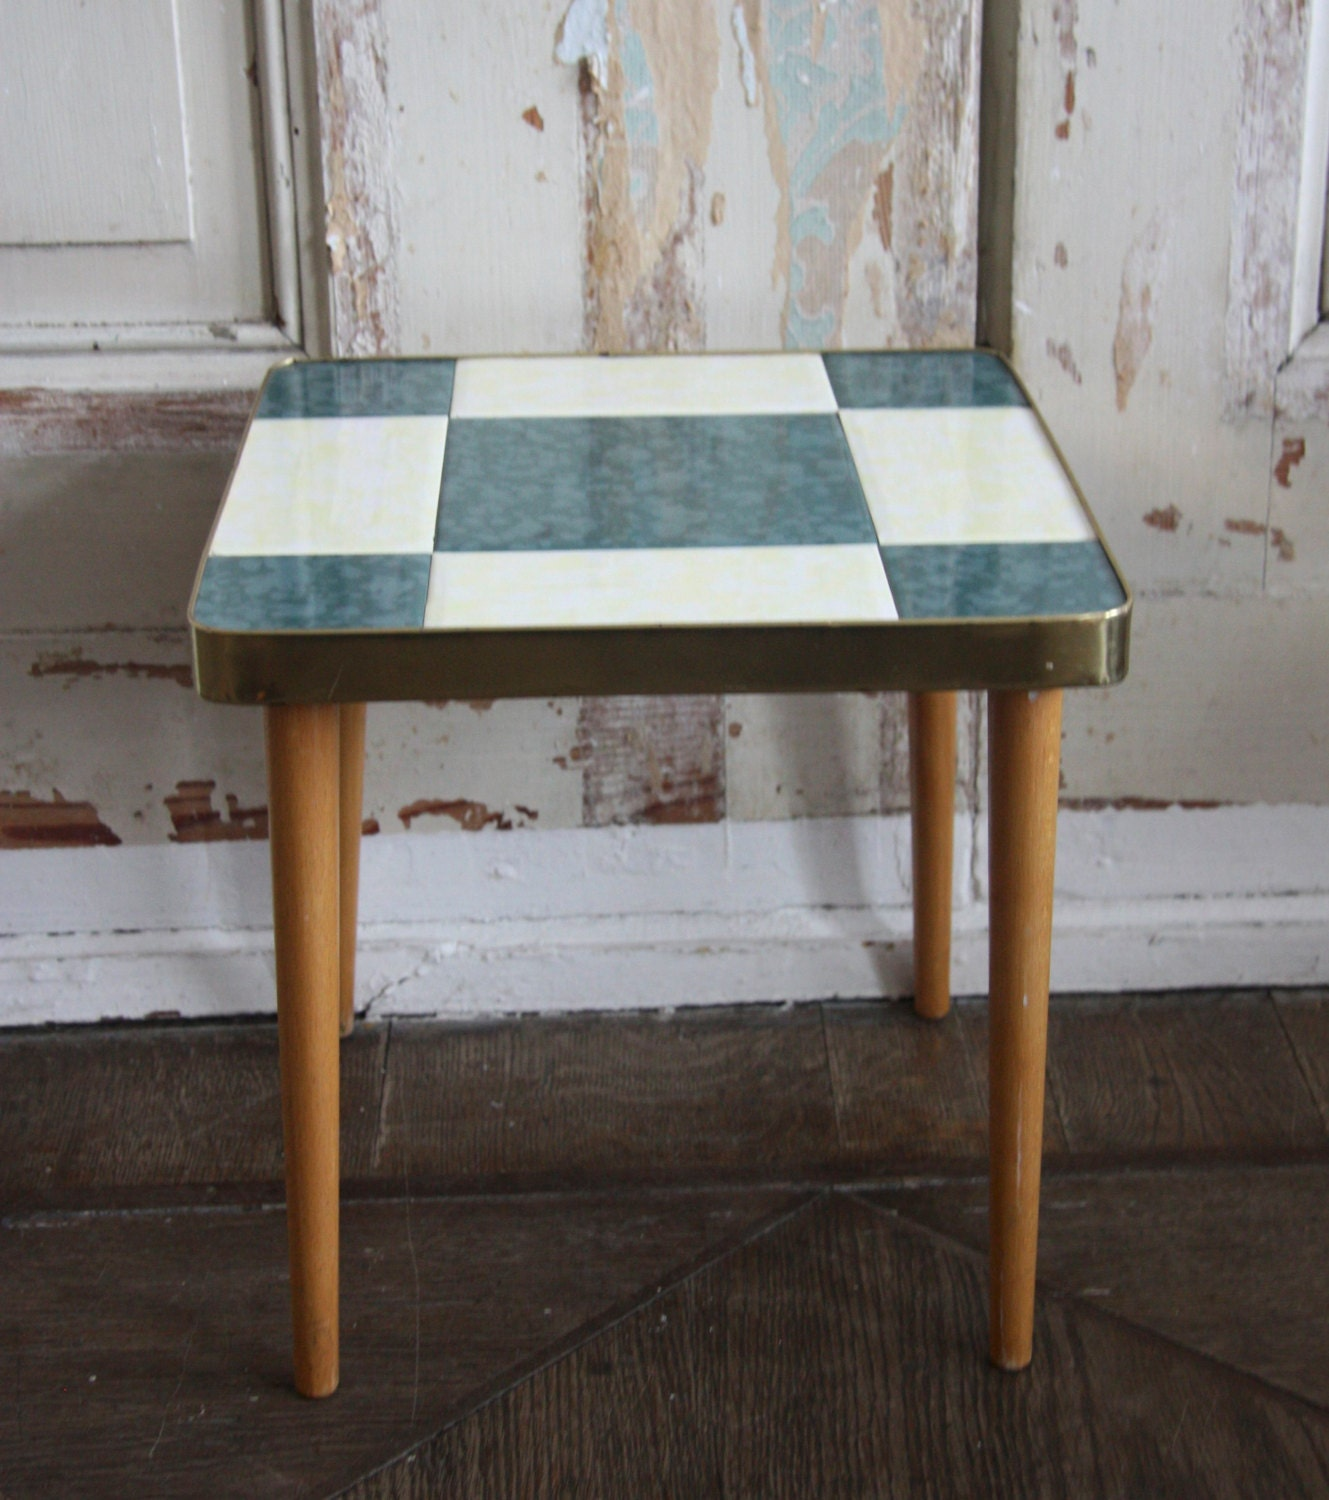 German Blue and White Tile Mid Century Plant Stand / End Table - RetroKombinat